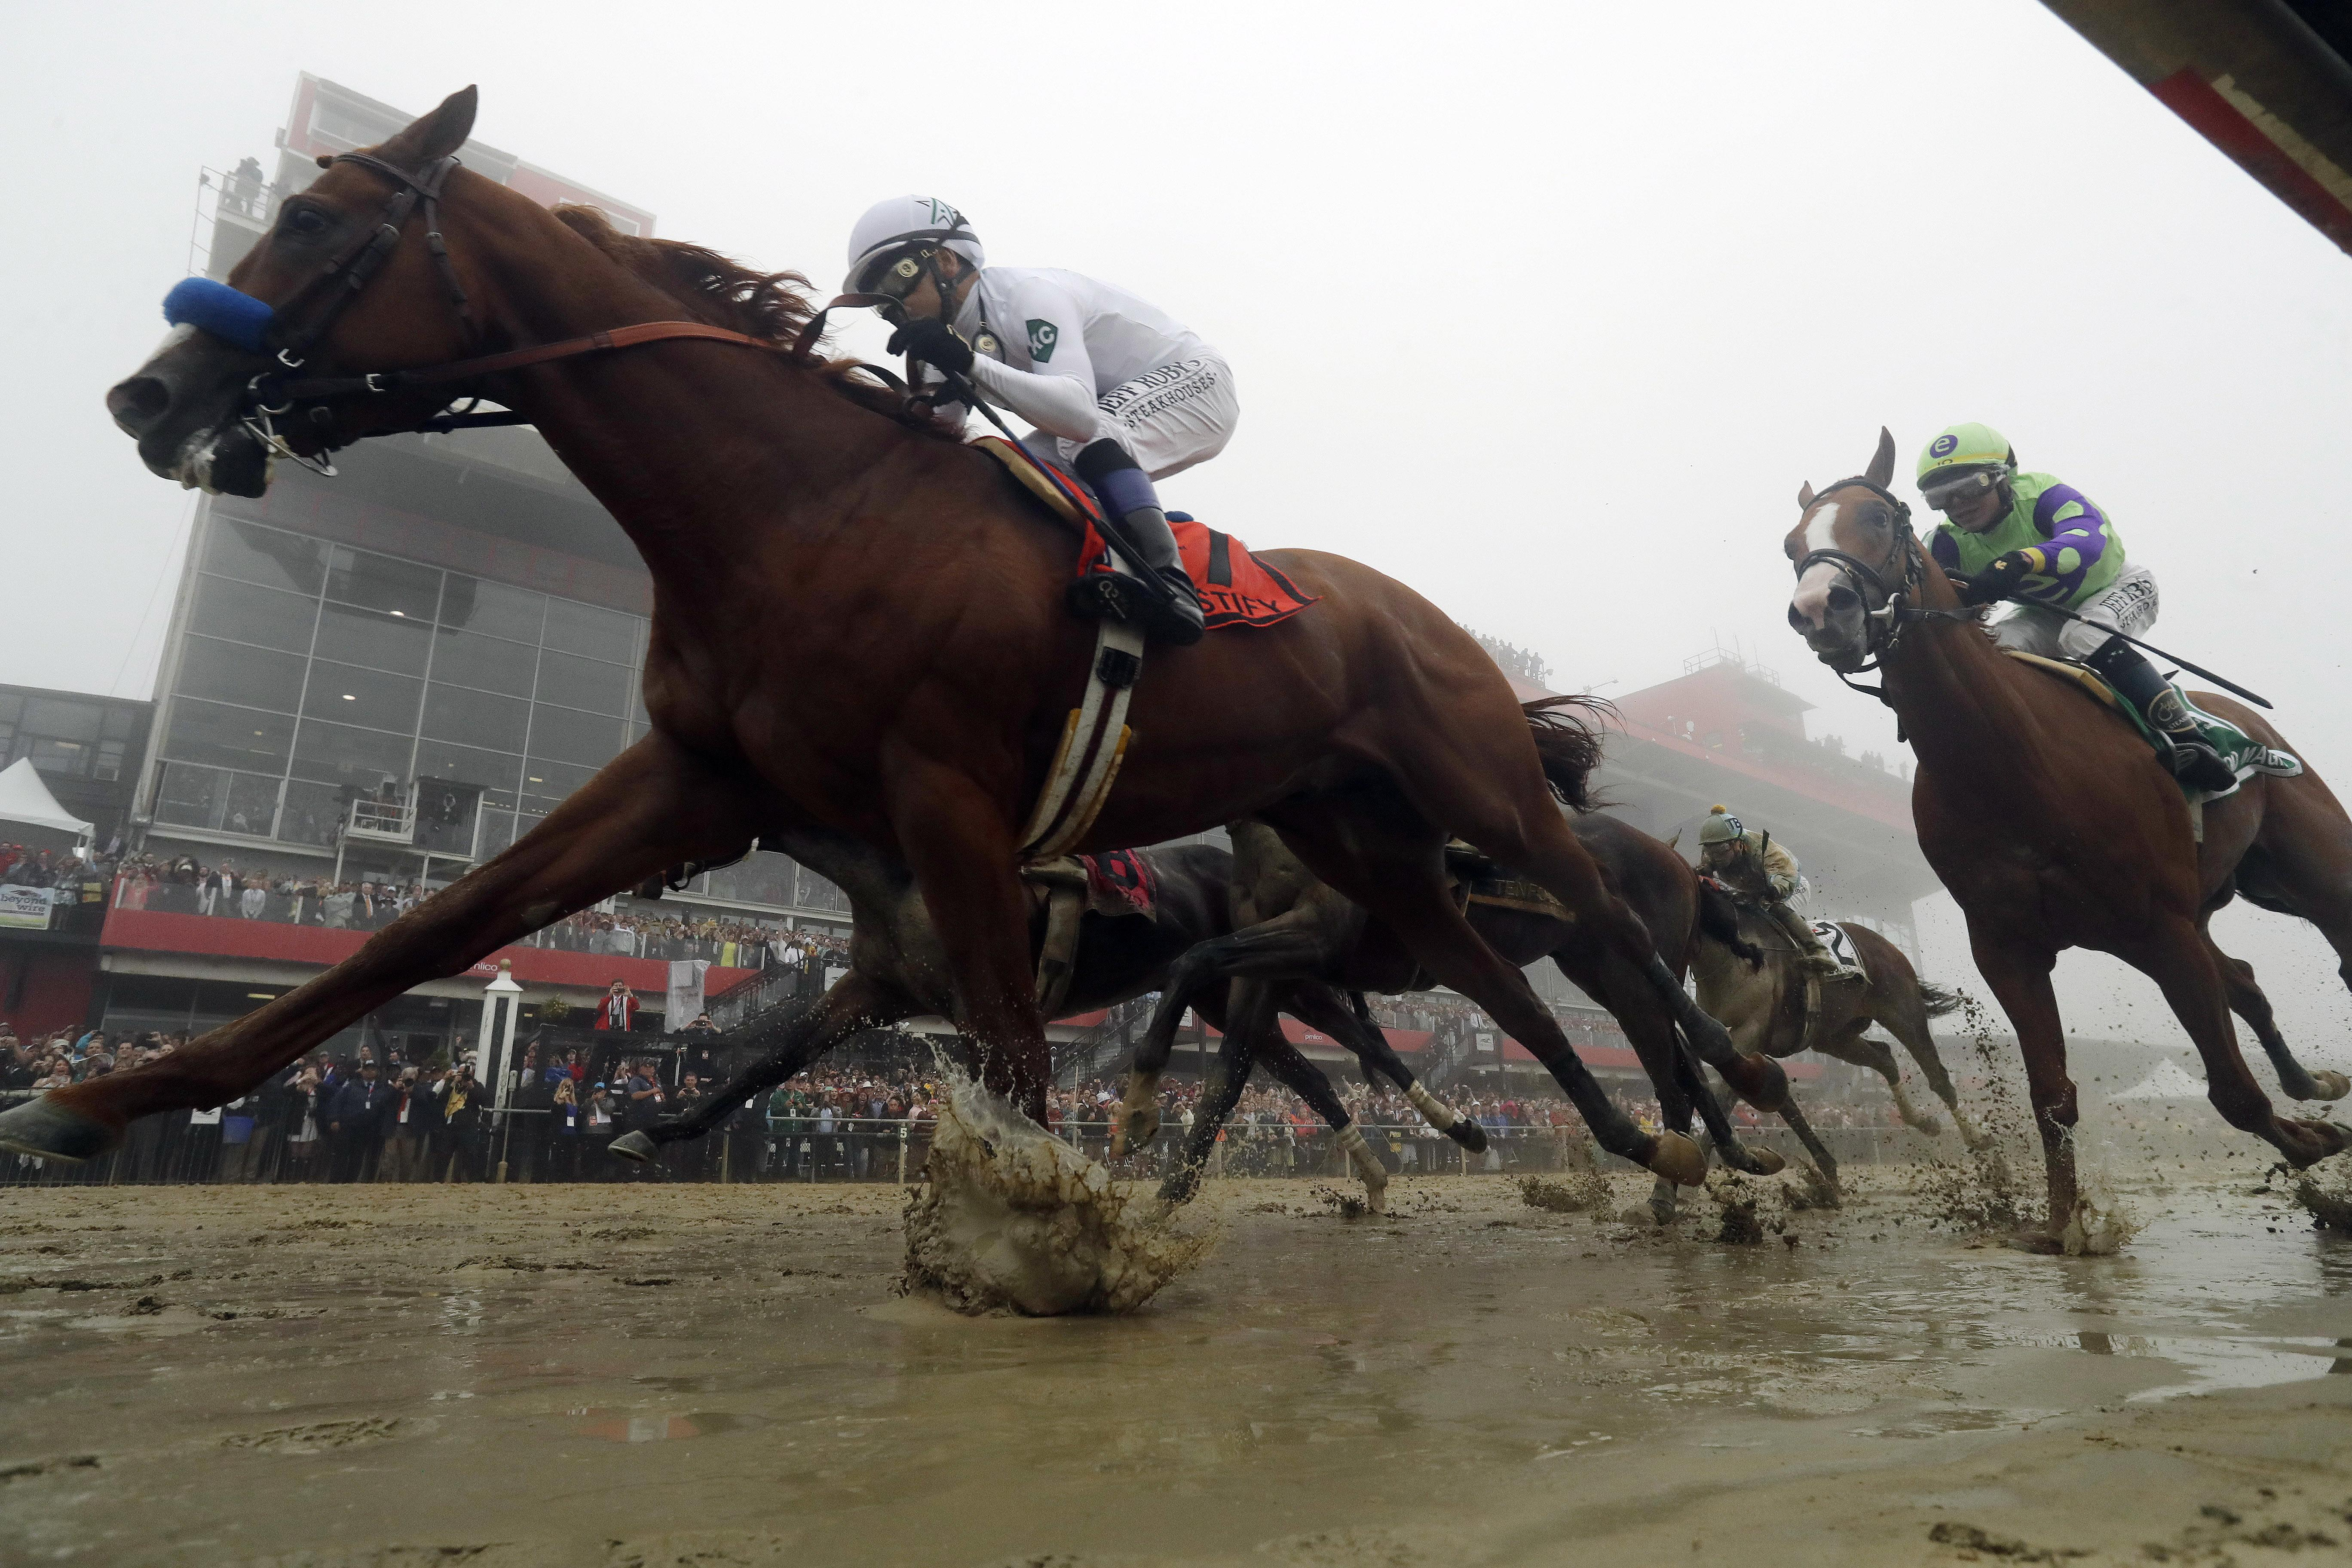 Justify won the Preakness at Pimlico last month to set up his Triple Crown bid